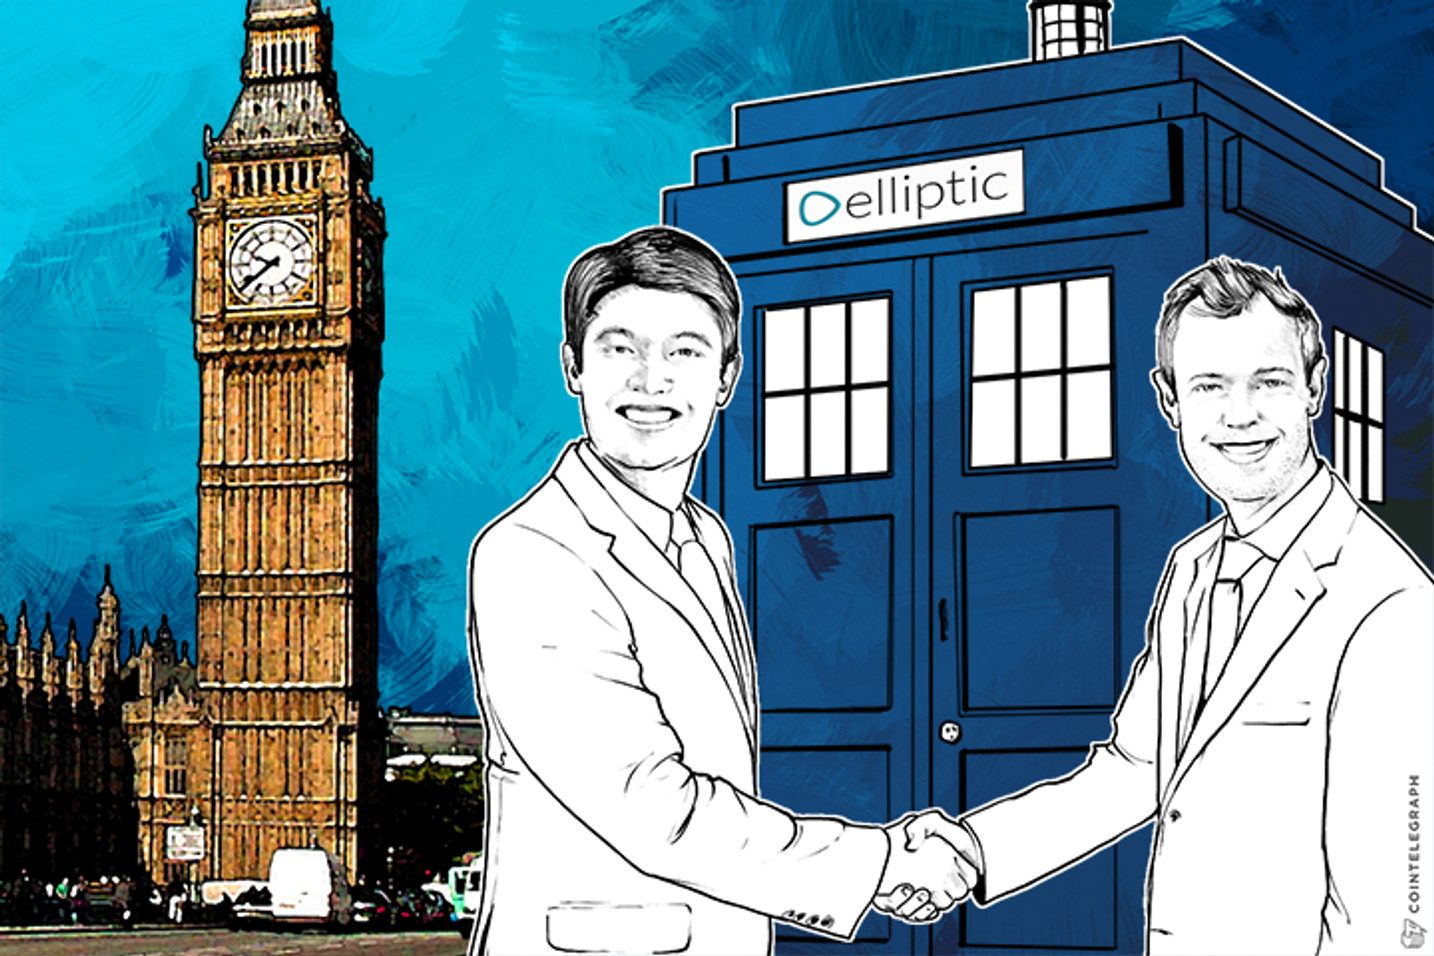 Elliptic Welcomes Aboard Bitcoin Foundation's Former Exec